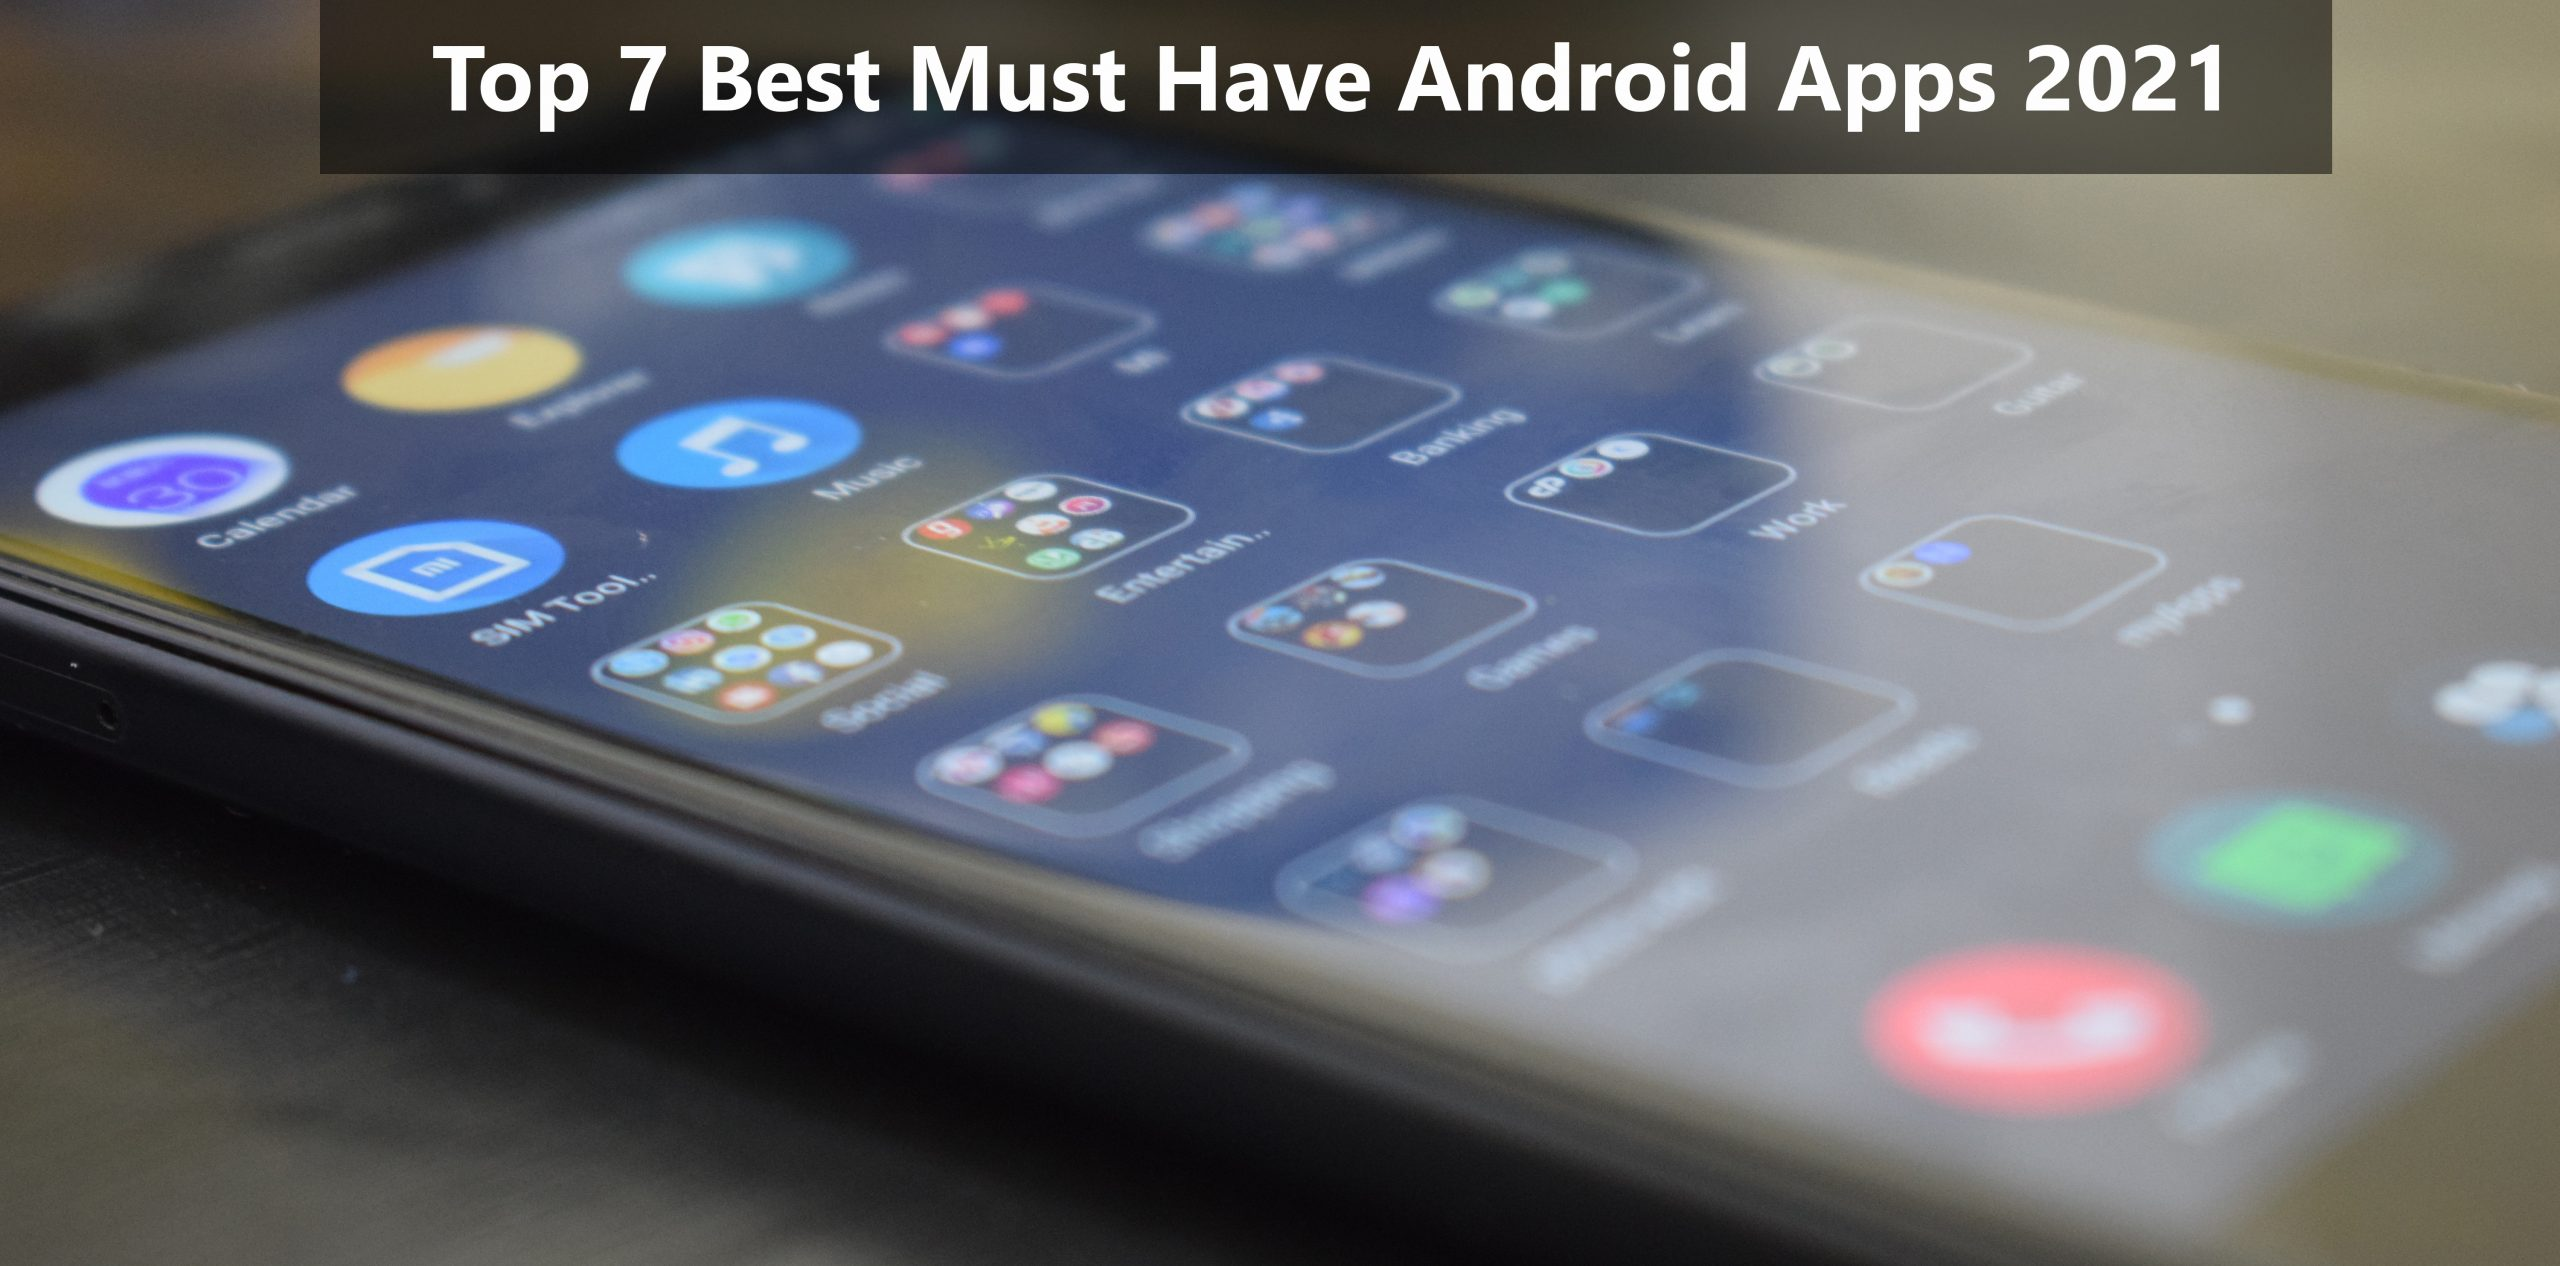 Top 7 Best Must Have Android Apps 2021